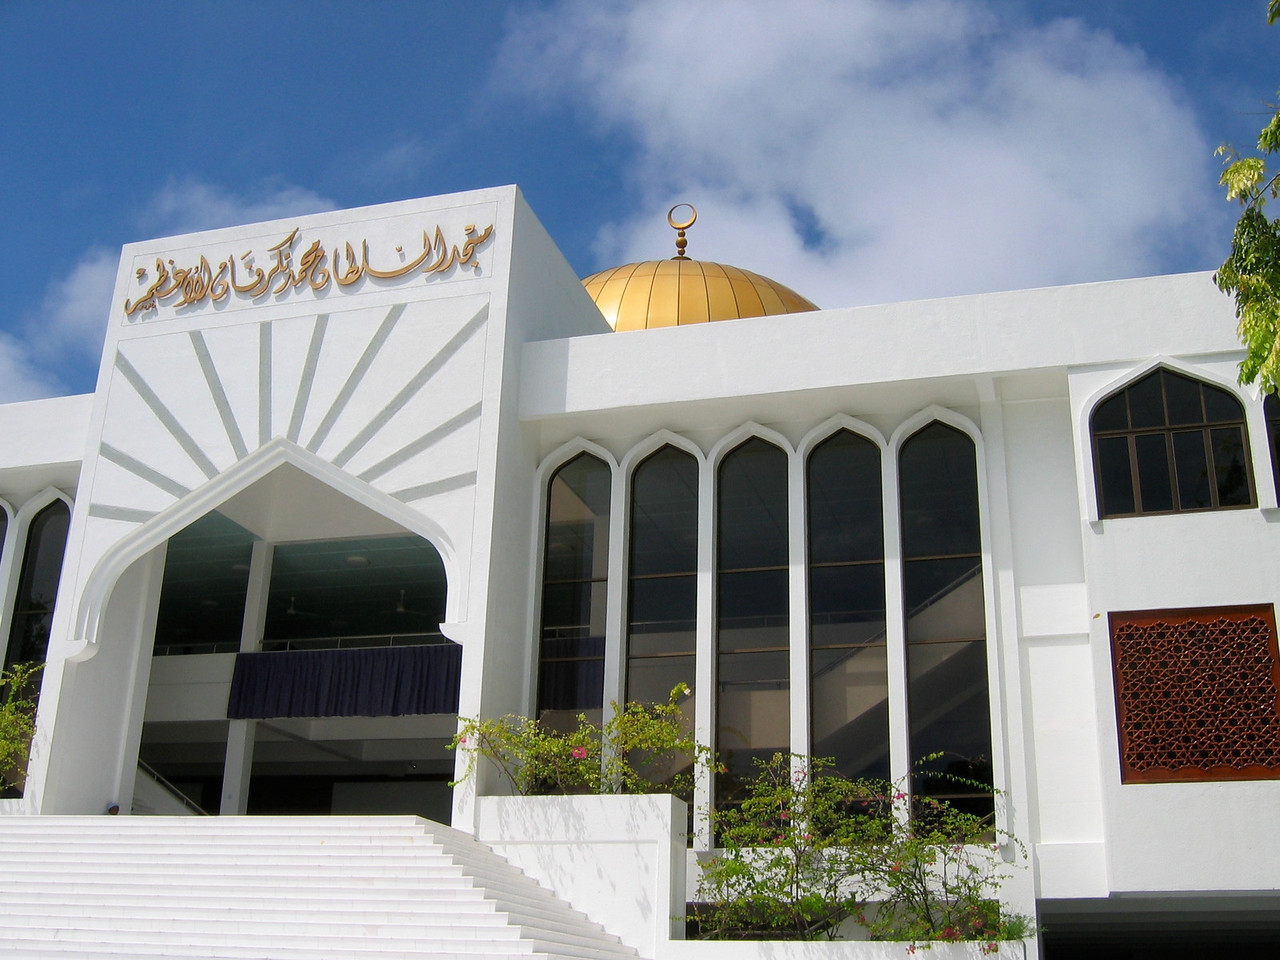 The Islamic Centre is an architectural landmark in Malé, opened in November 1984 by President Maumoon Abdul Gayoom.<br /> <br /> The Grand Friday Mosque located in the Centre, is named after Sultan Muhammad Thakurufaanu Al Auzam of the Maldives. <br /> <br /> The mosque is also the largest in the Maldives, and also one of the largest in South Asia admitting over 5000 people.<br /> <br /> The Centre also serves a conference hall where official meetings and ceremonies are held, an Islamic library and a number of offices